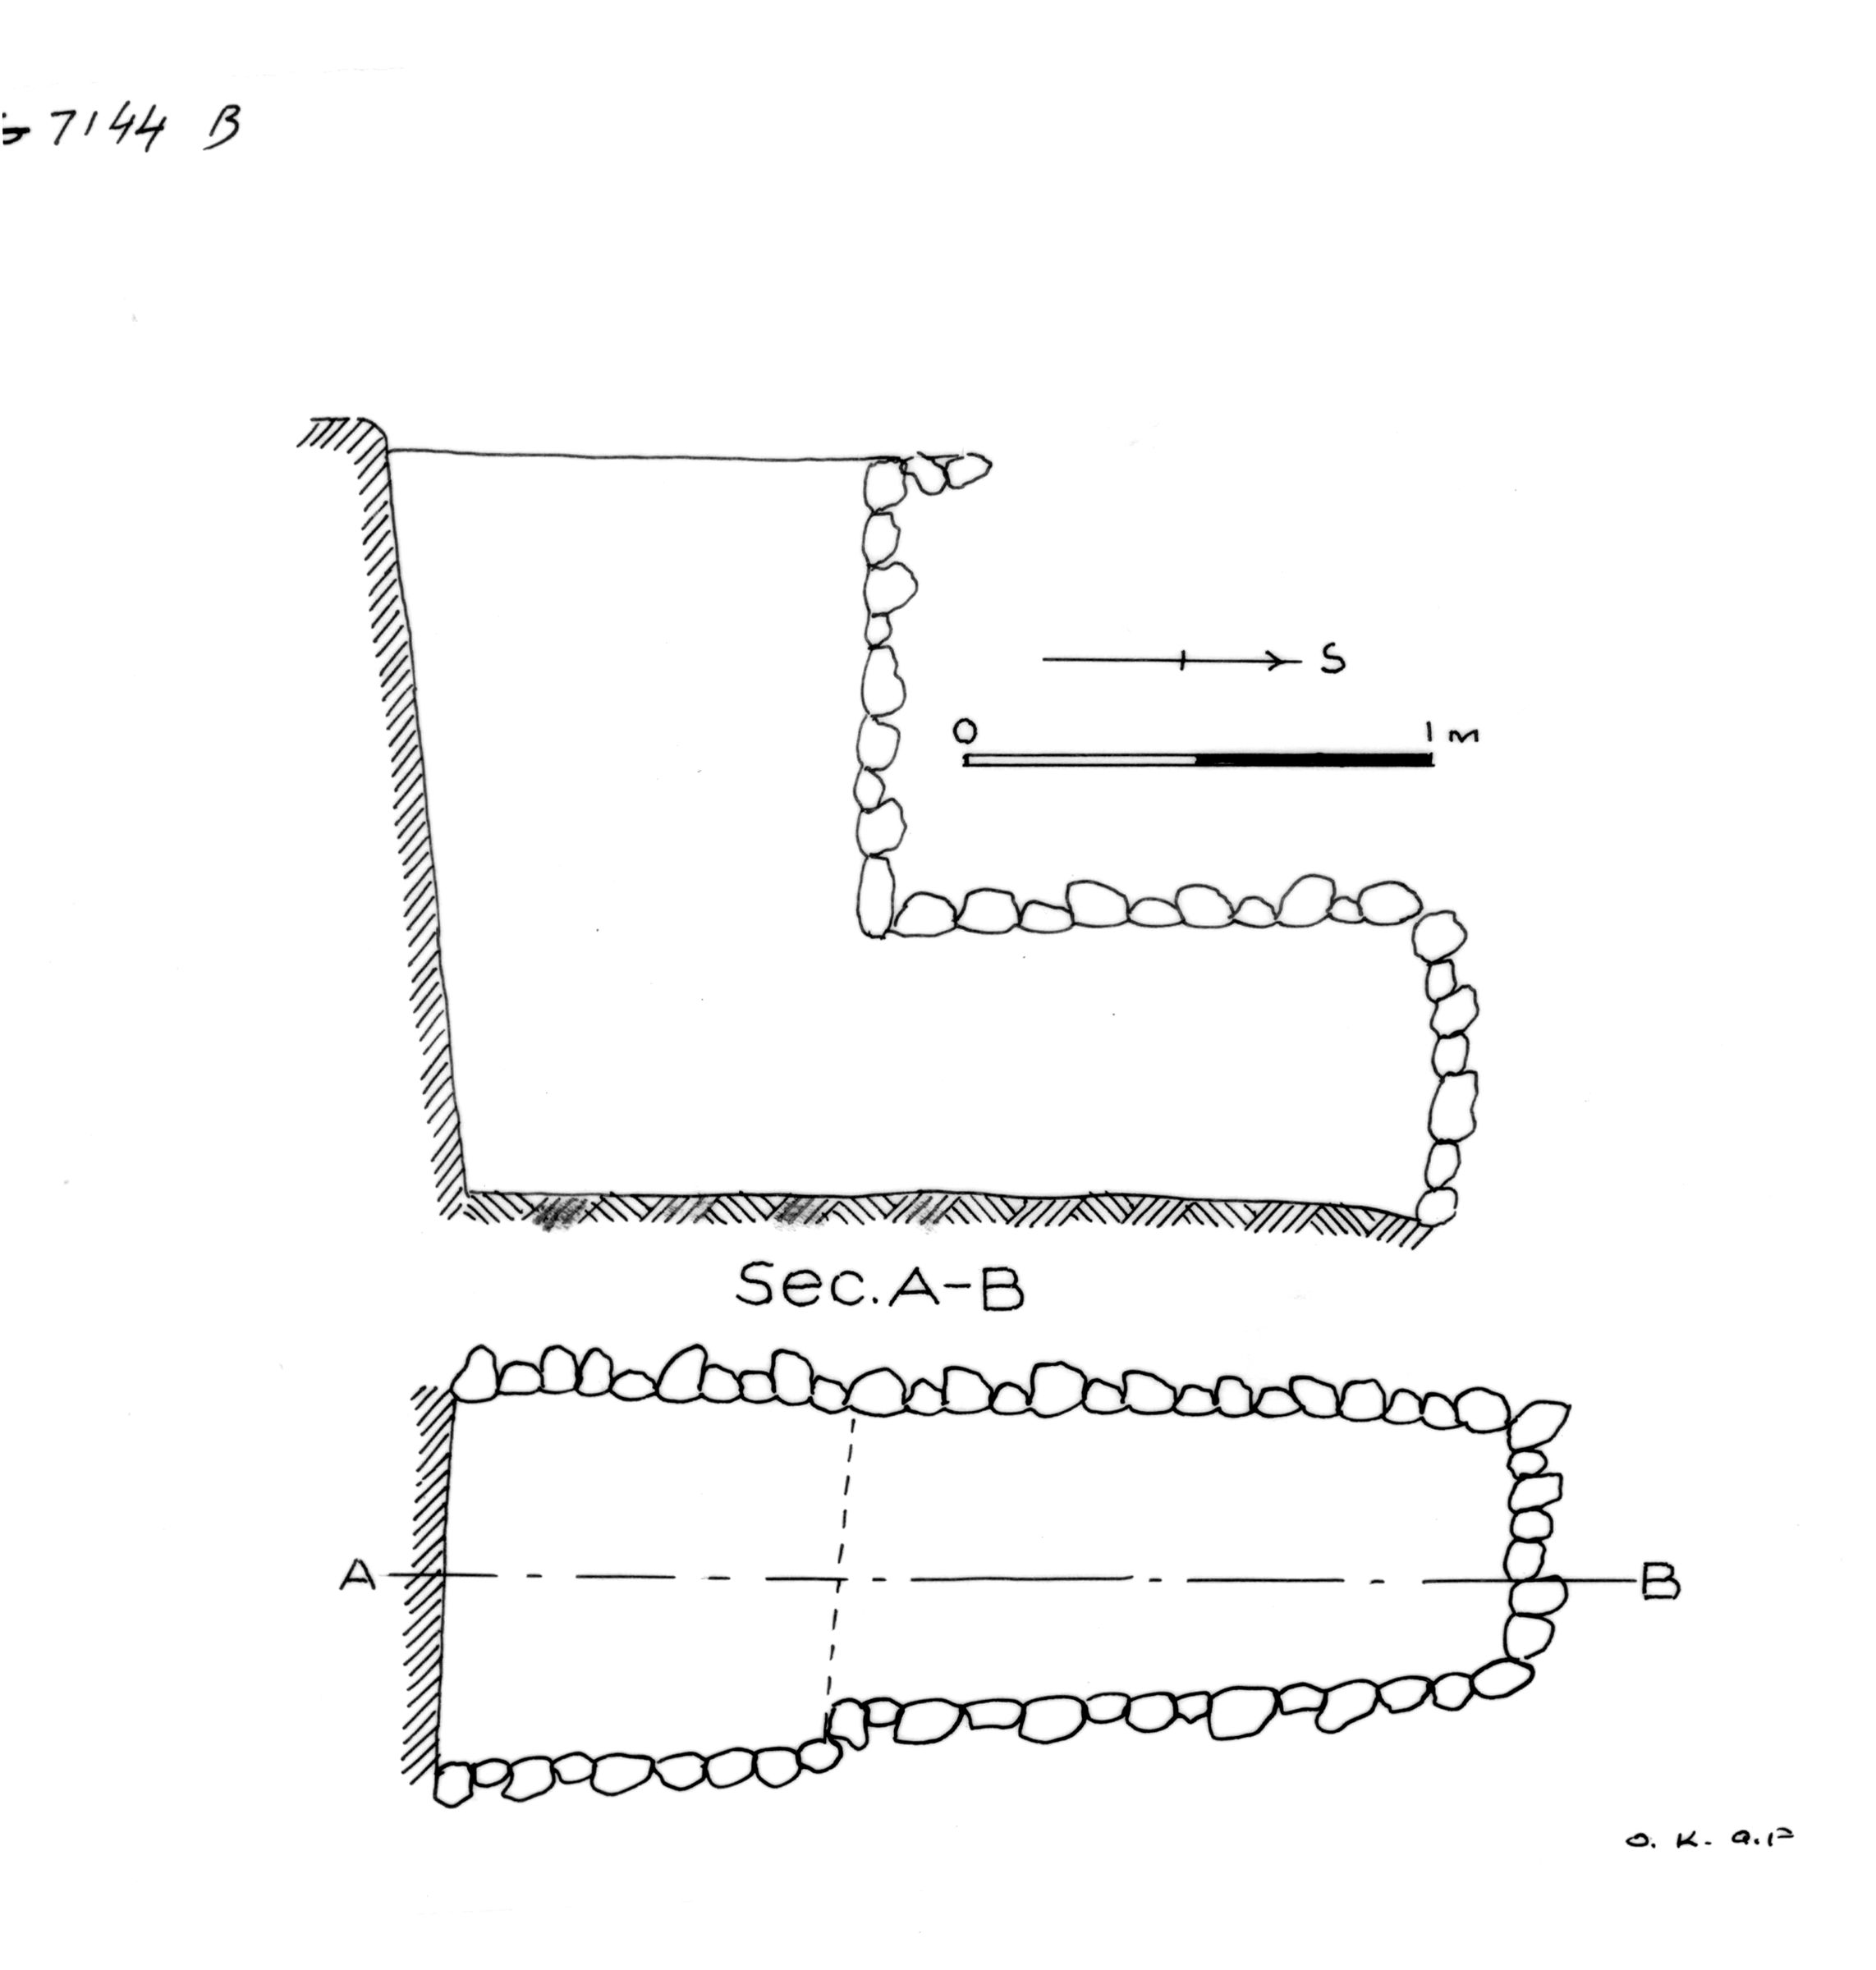 Maps and plans: G 7144, Shaft B